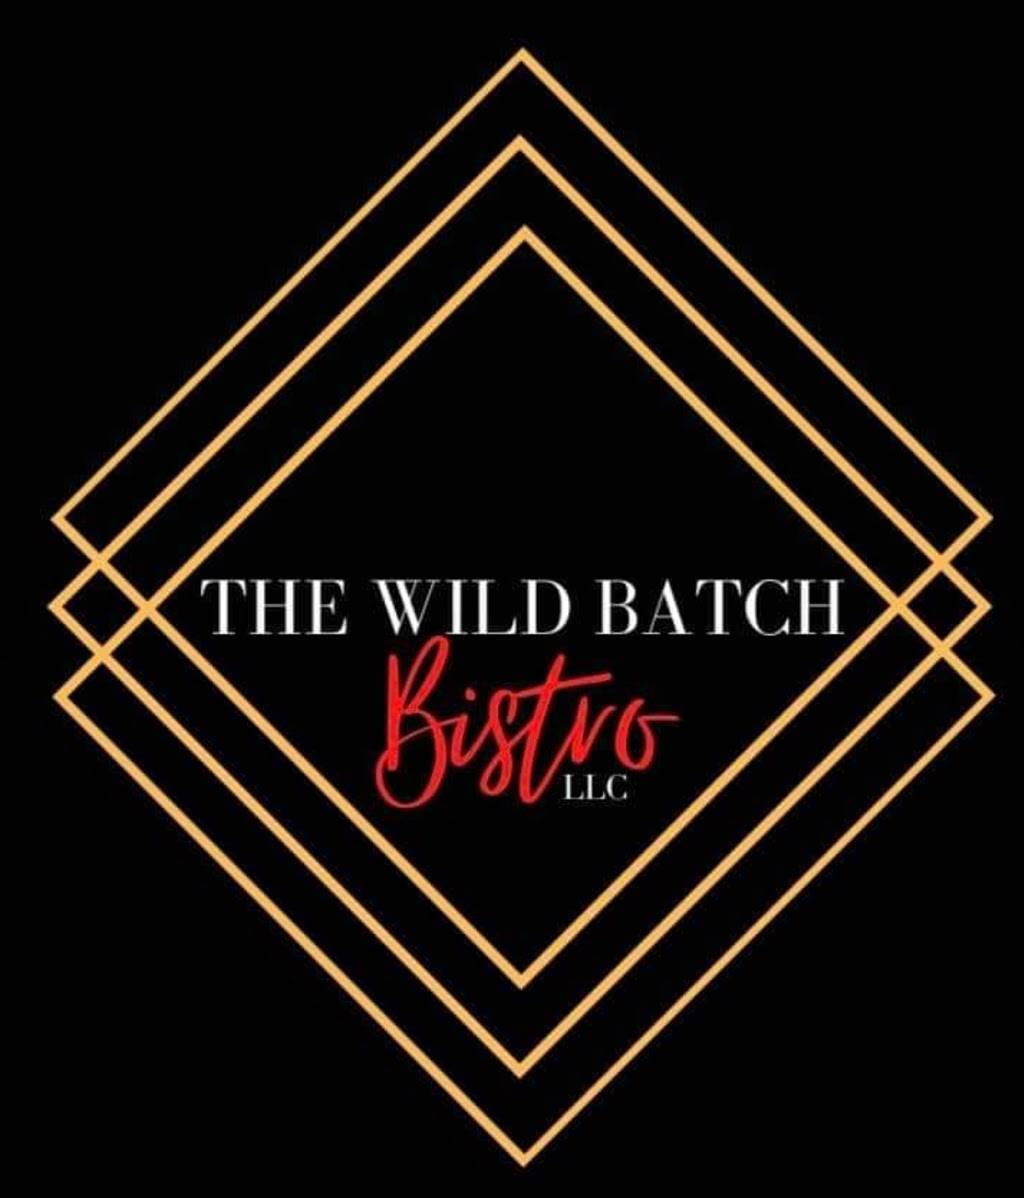 The Wild Batch Bistro | restaurant | 120 N 4th St, Wrightsville, PA 17368, USA